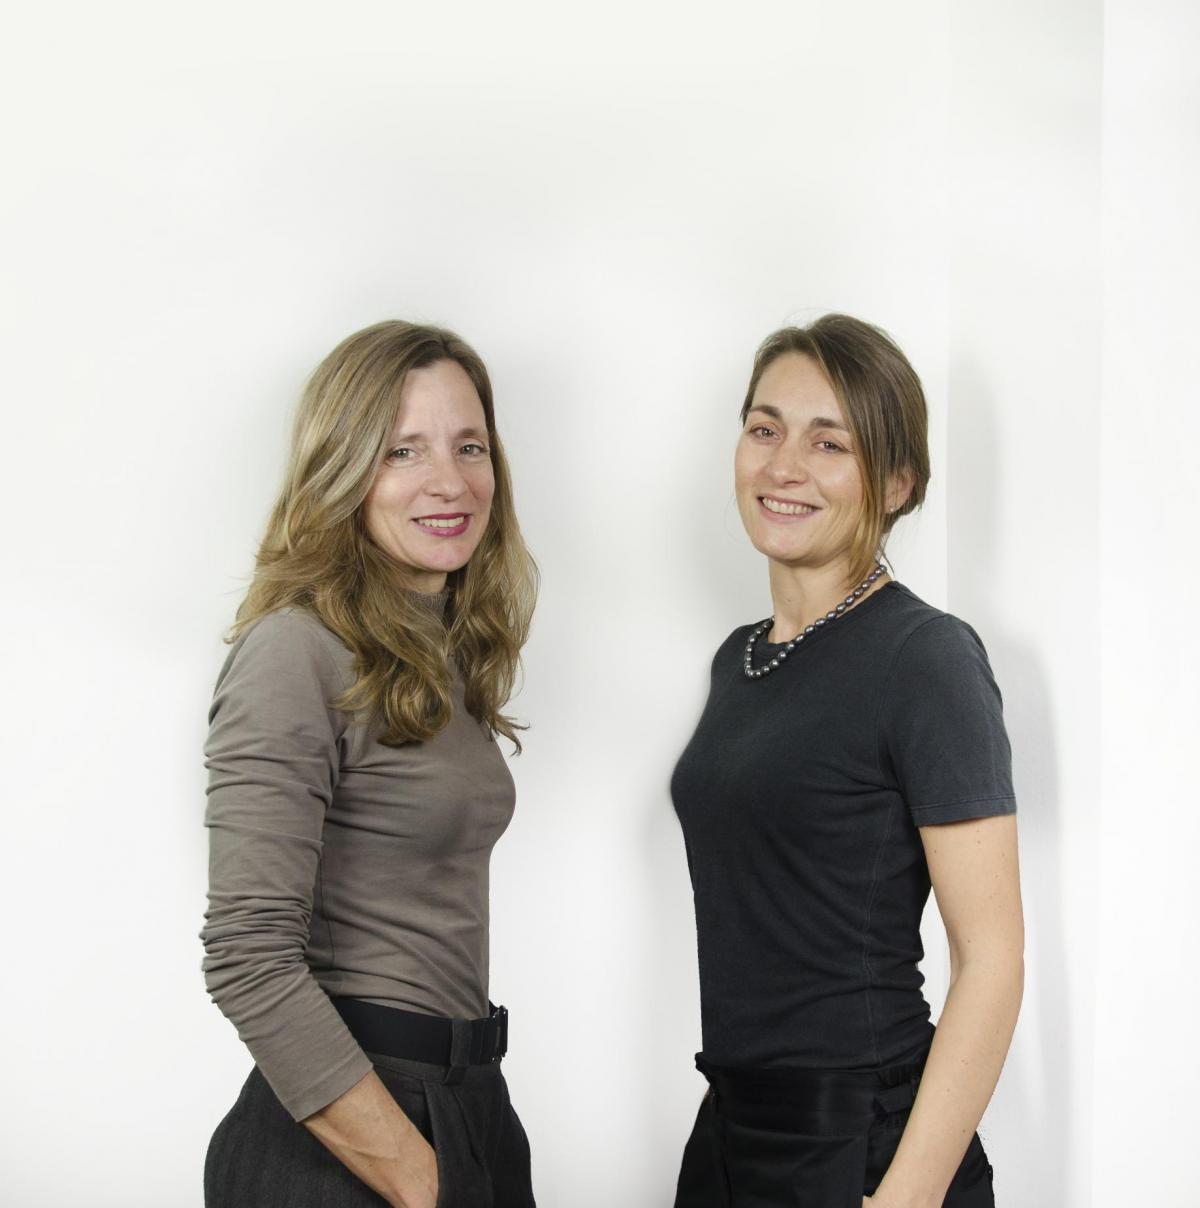 Elina Vilà and Agnès Blanch from vilablanch interior design studio in Barcelona